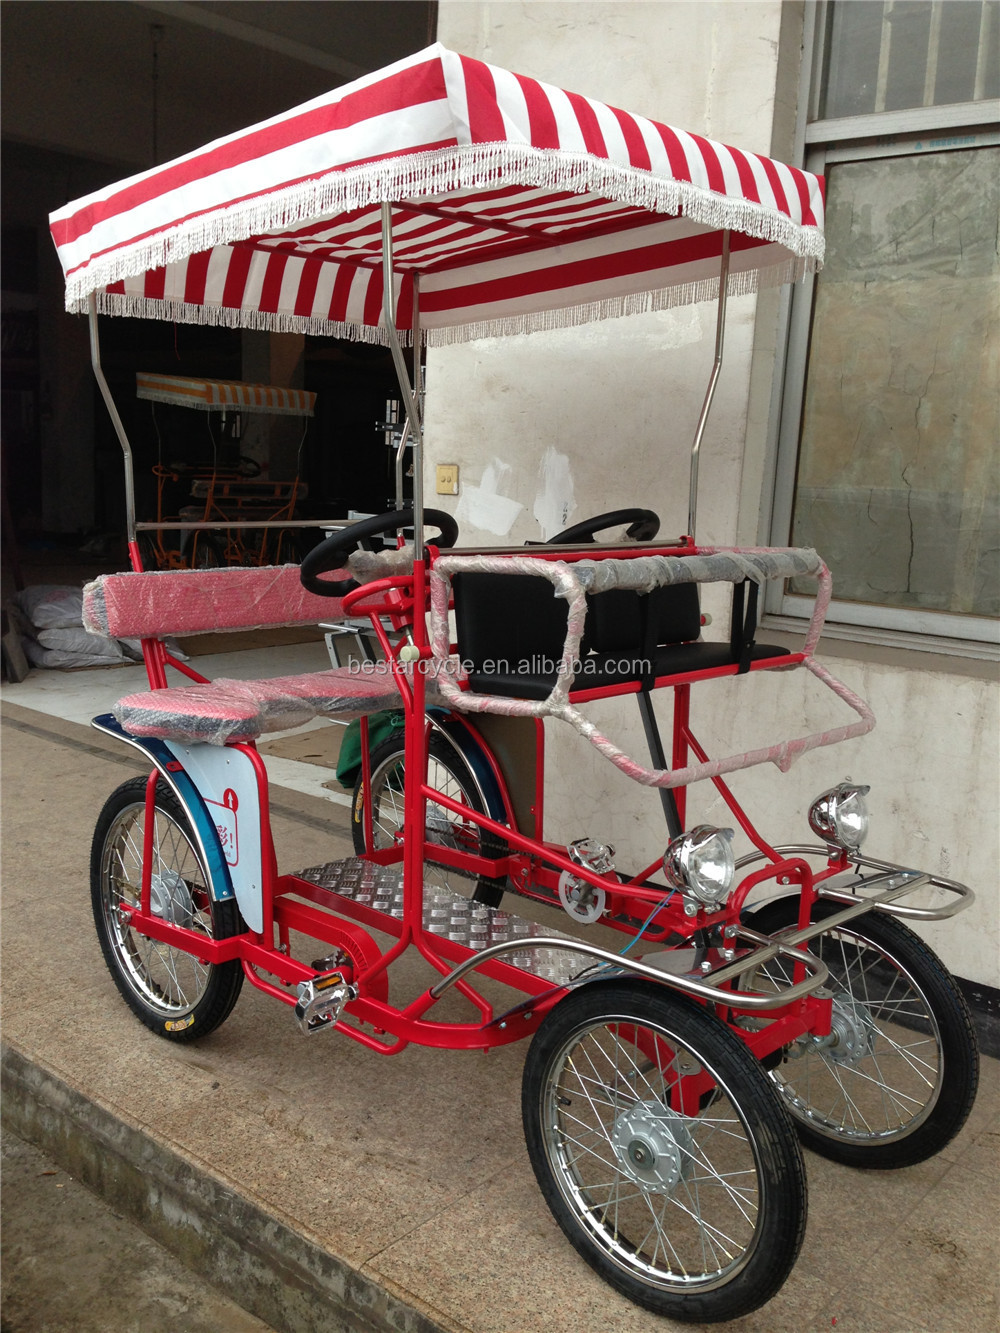 Bestselling Tandem Bicycle 4 Person Surrey Bike With Hub Brake - Buy Surrey  Bicycle,Surrey Bike,Surrey Cycle Product on Alibaba com